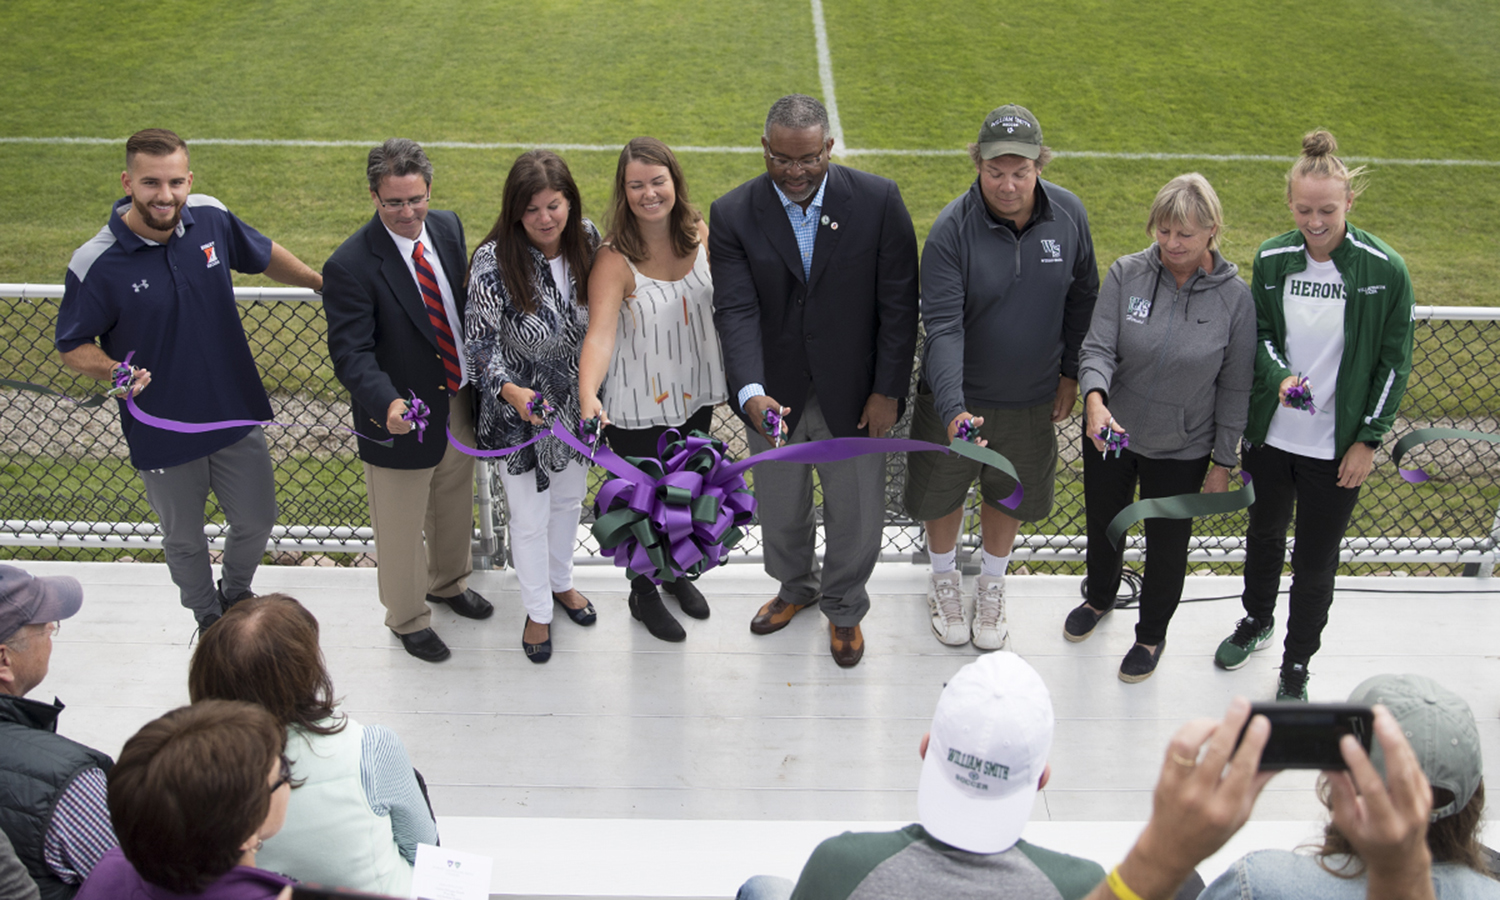 Adrian Colmenares '18, Hobart Soccer Head Coach Sean Griffin, Anne DeLaney, Emma Carver, President Gregory J. Vincent '83, Trustee Chip Carver '81, William Smith Soccer Head Coach Aliceann Wilber P'12 and Evie Manning '18 cut the ribbon on the newly constructed Carver-DeLaney Family Press Box at the John H. Cozzens Jr.'41 Memorial Field.